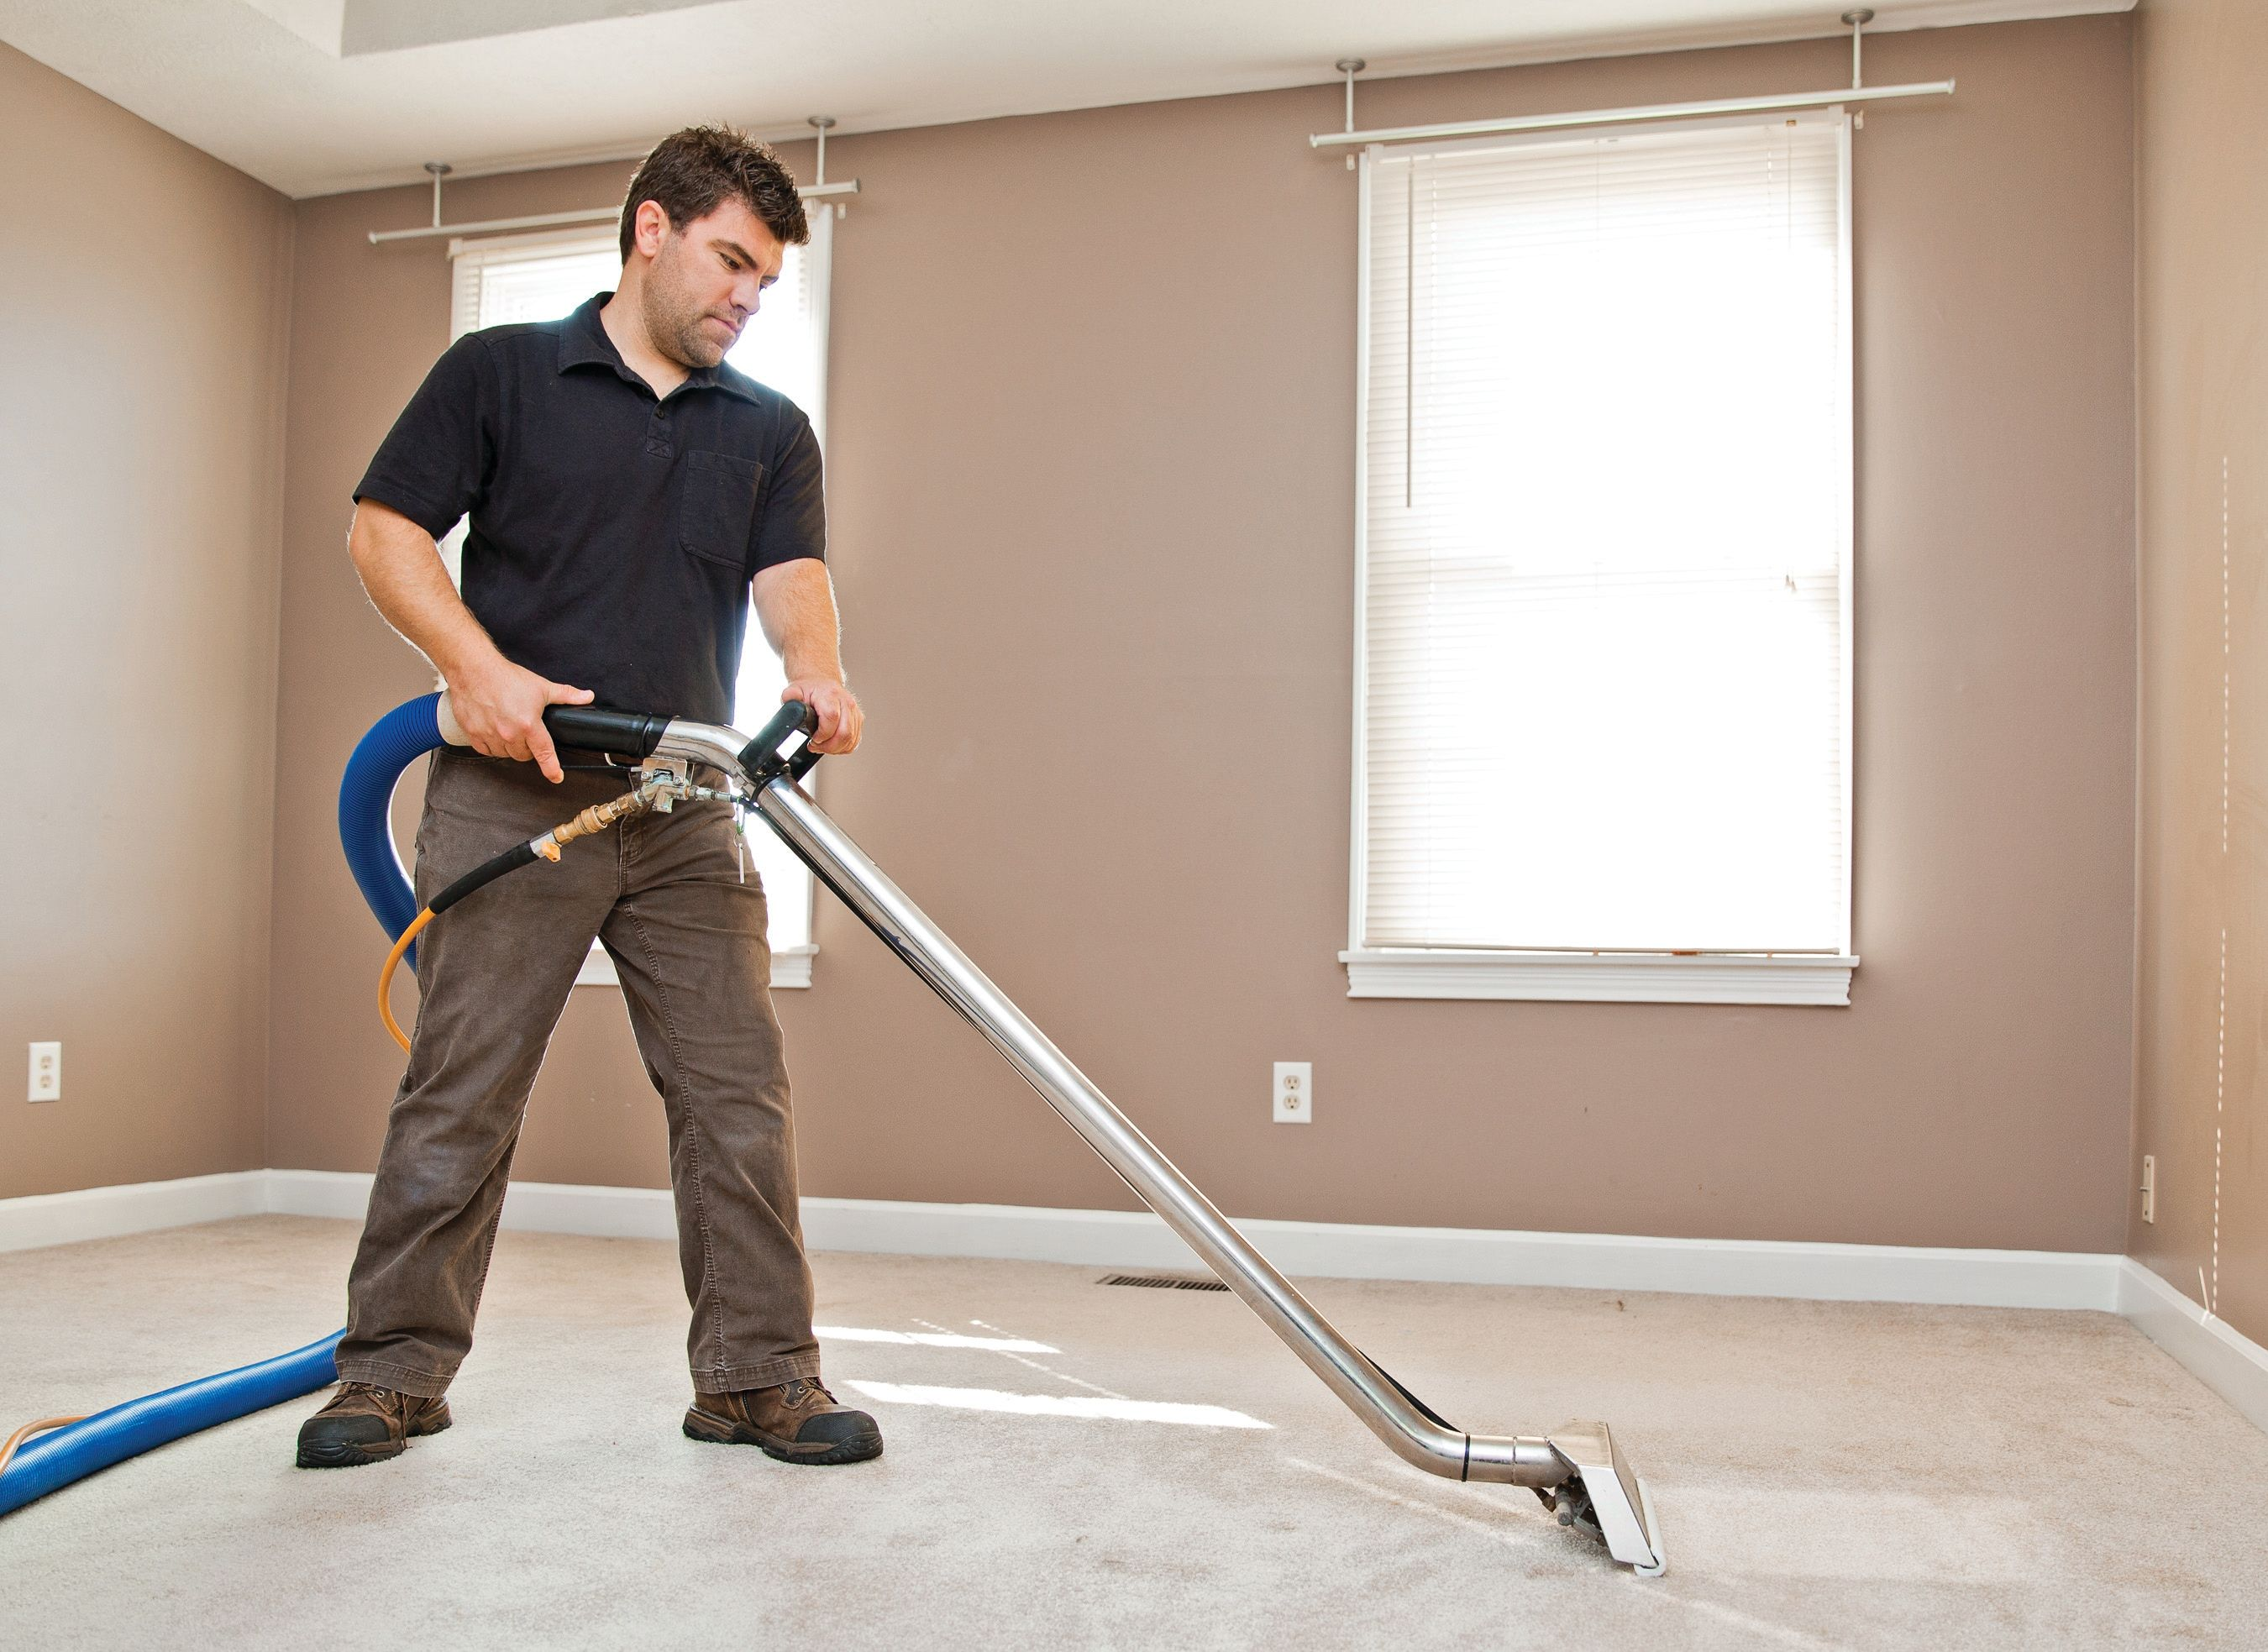 Carpet cleaning expert at work carpet cleaning tips pinterest professional carpet cleaning services in perth solutioingenieria Image collections